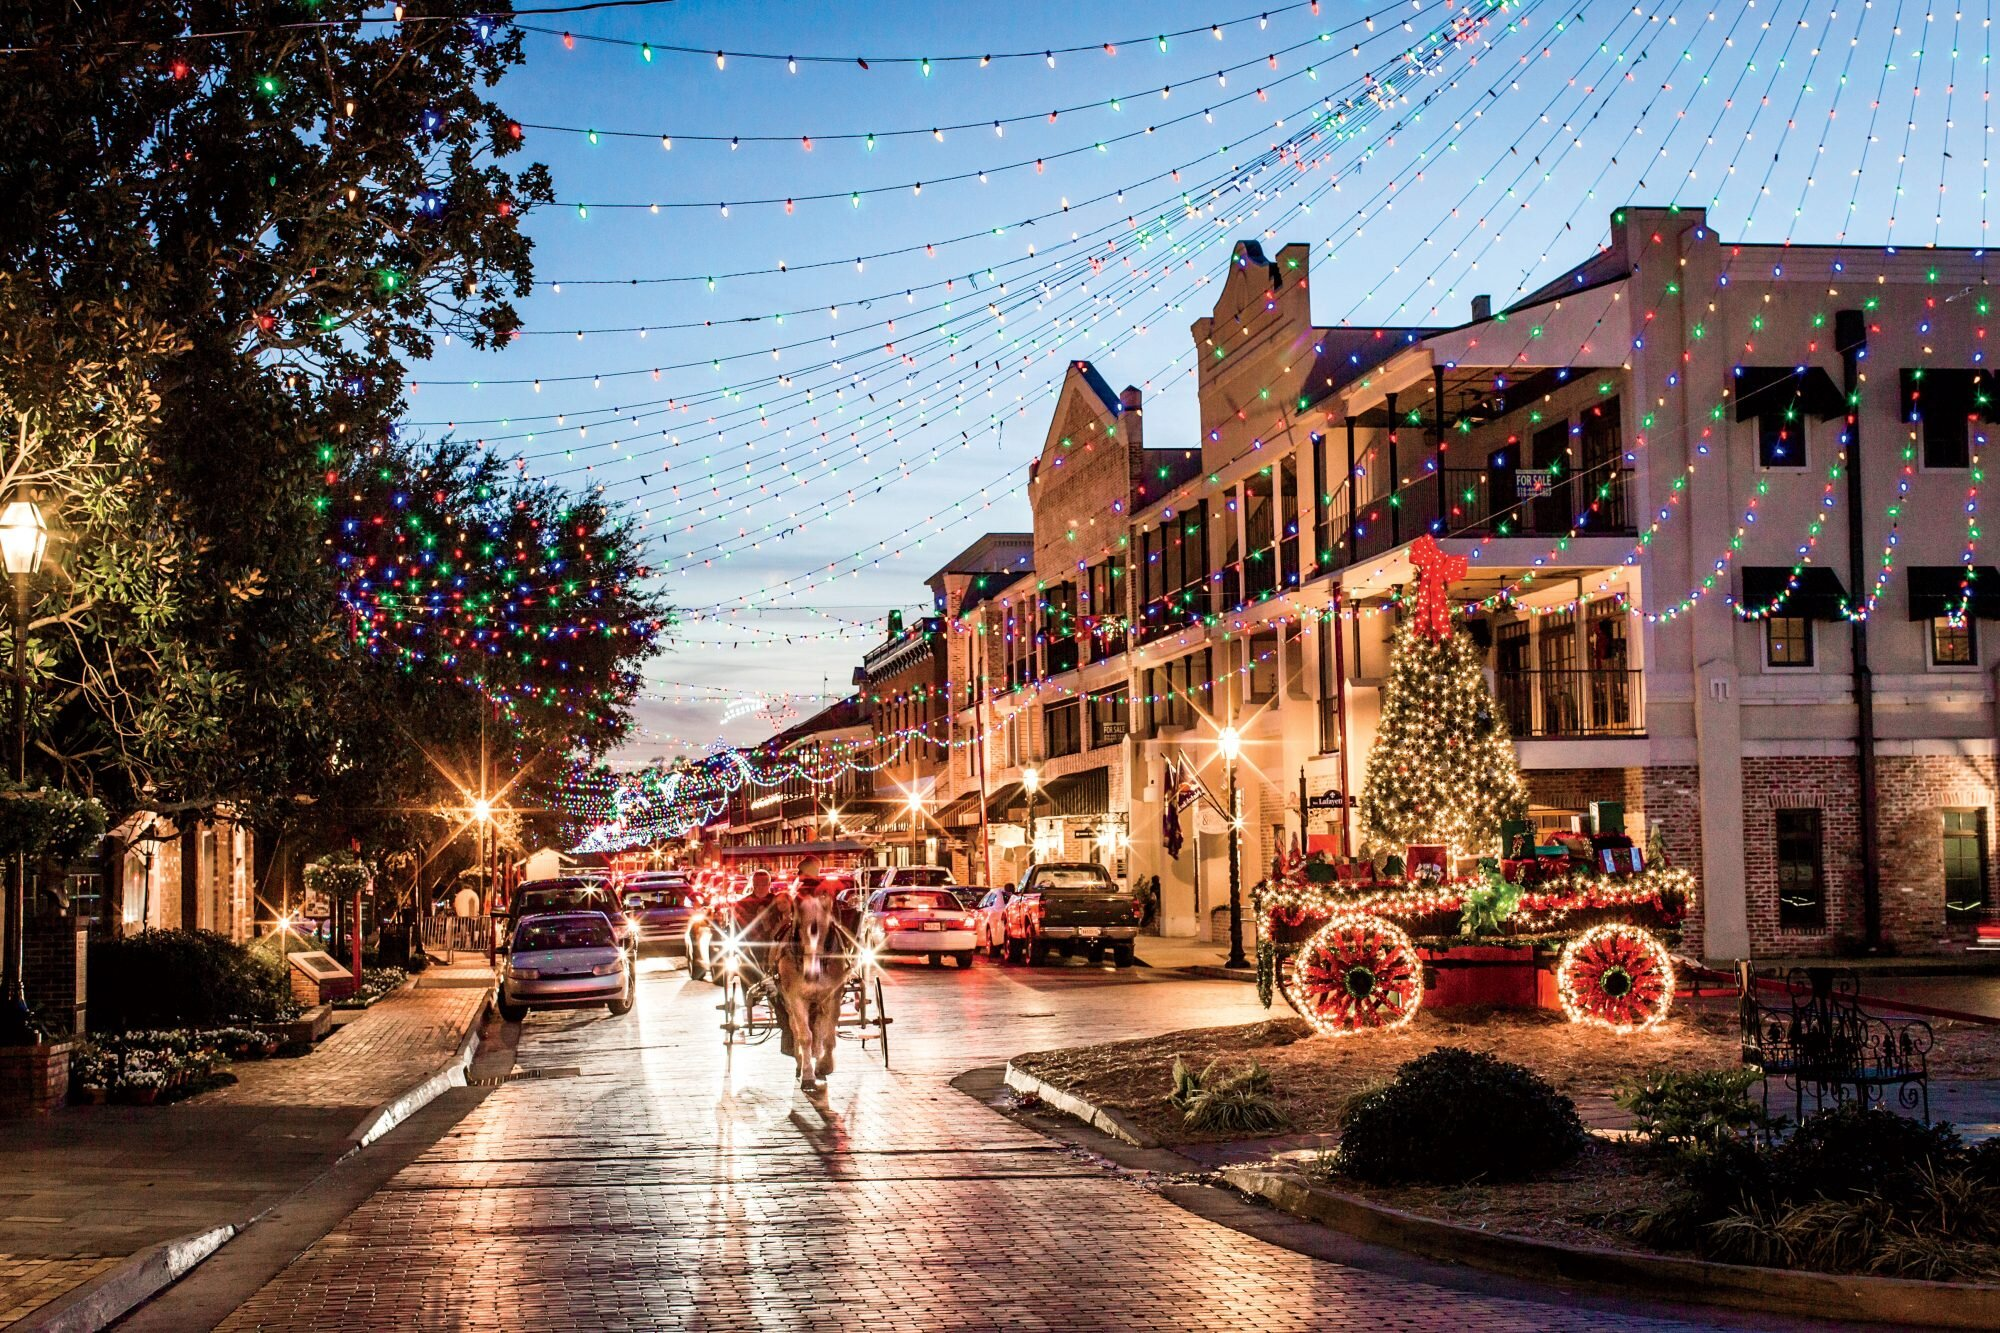 Natchitoches Christmas Lights 2020 Why You Need to See the Natchitoches Christmas Lights This Year